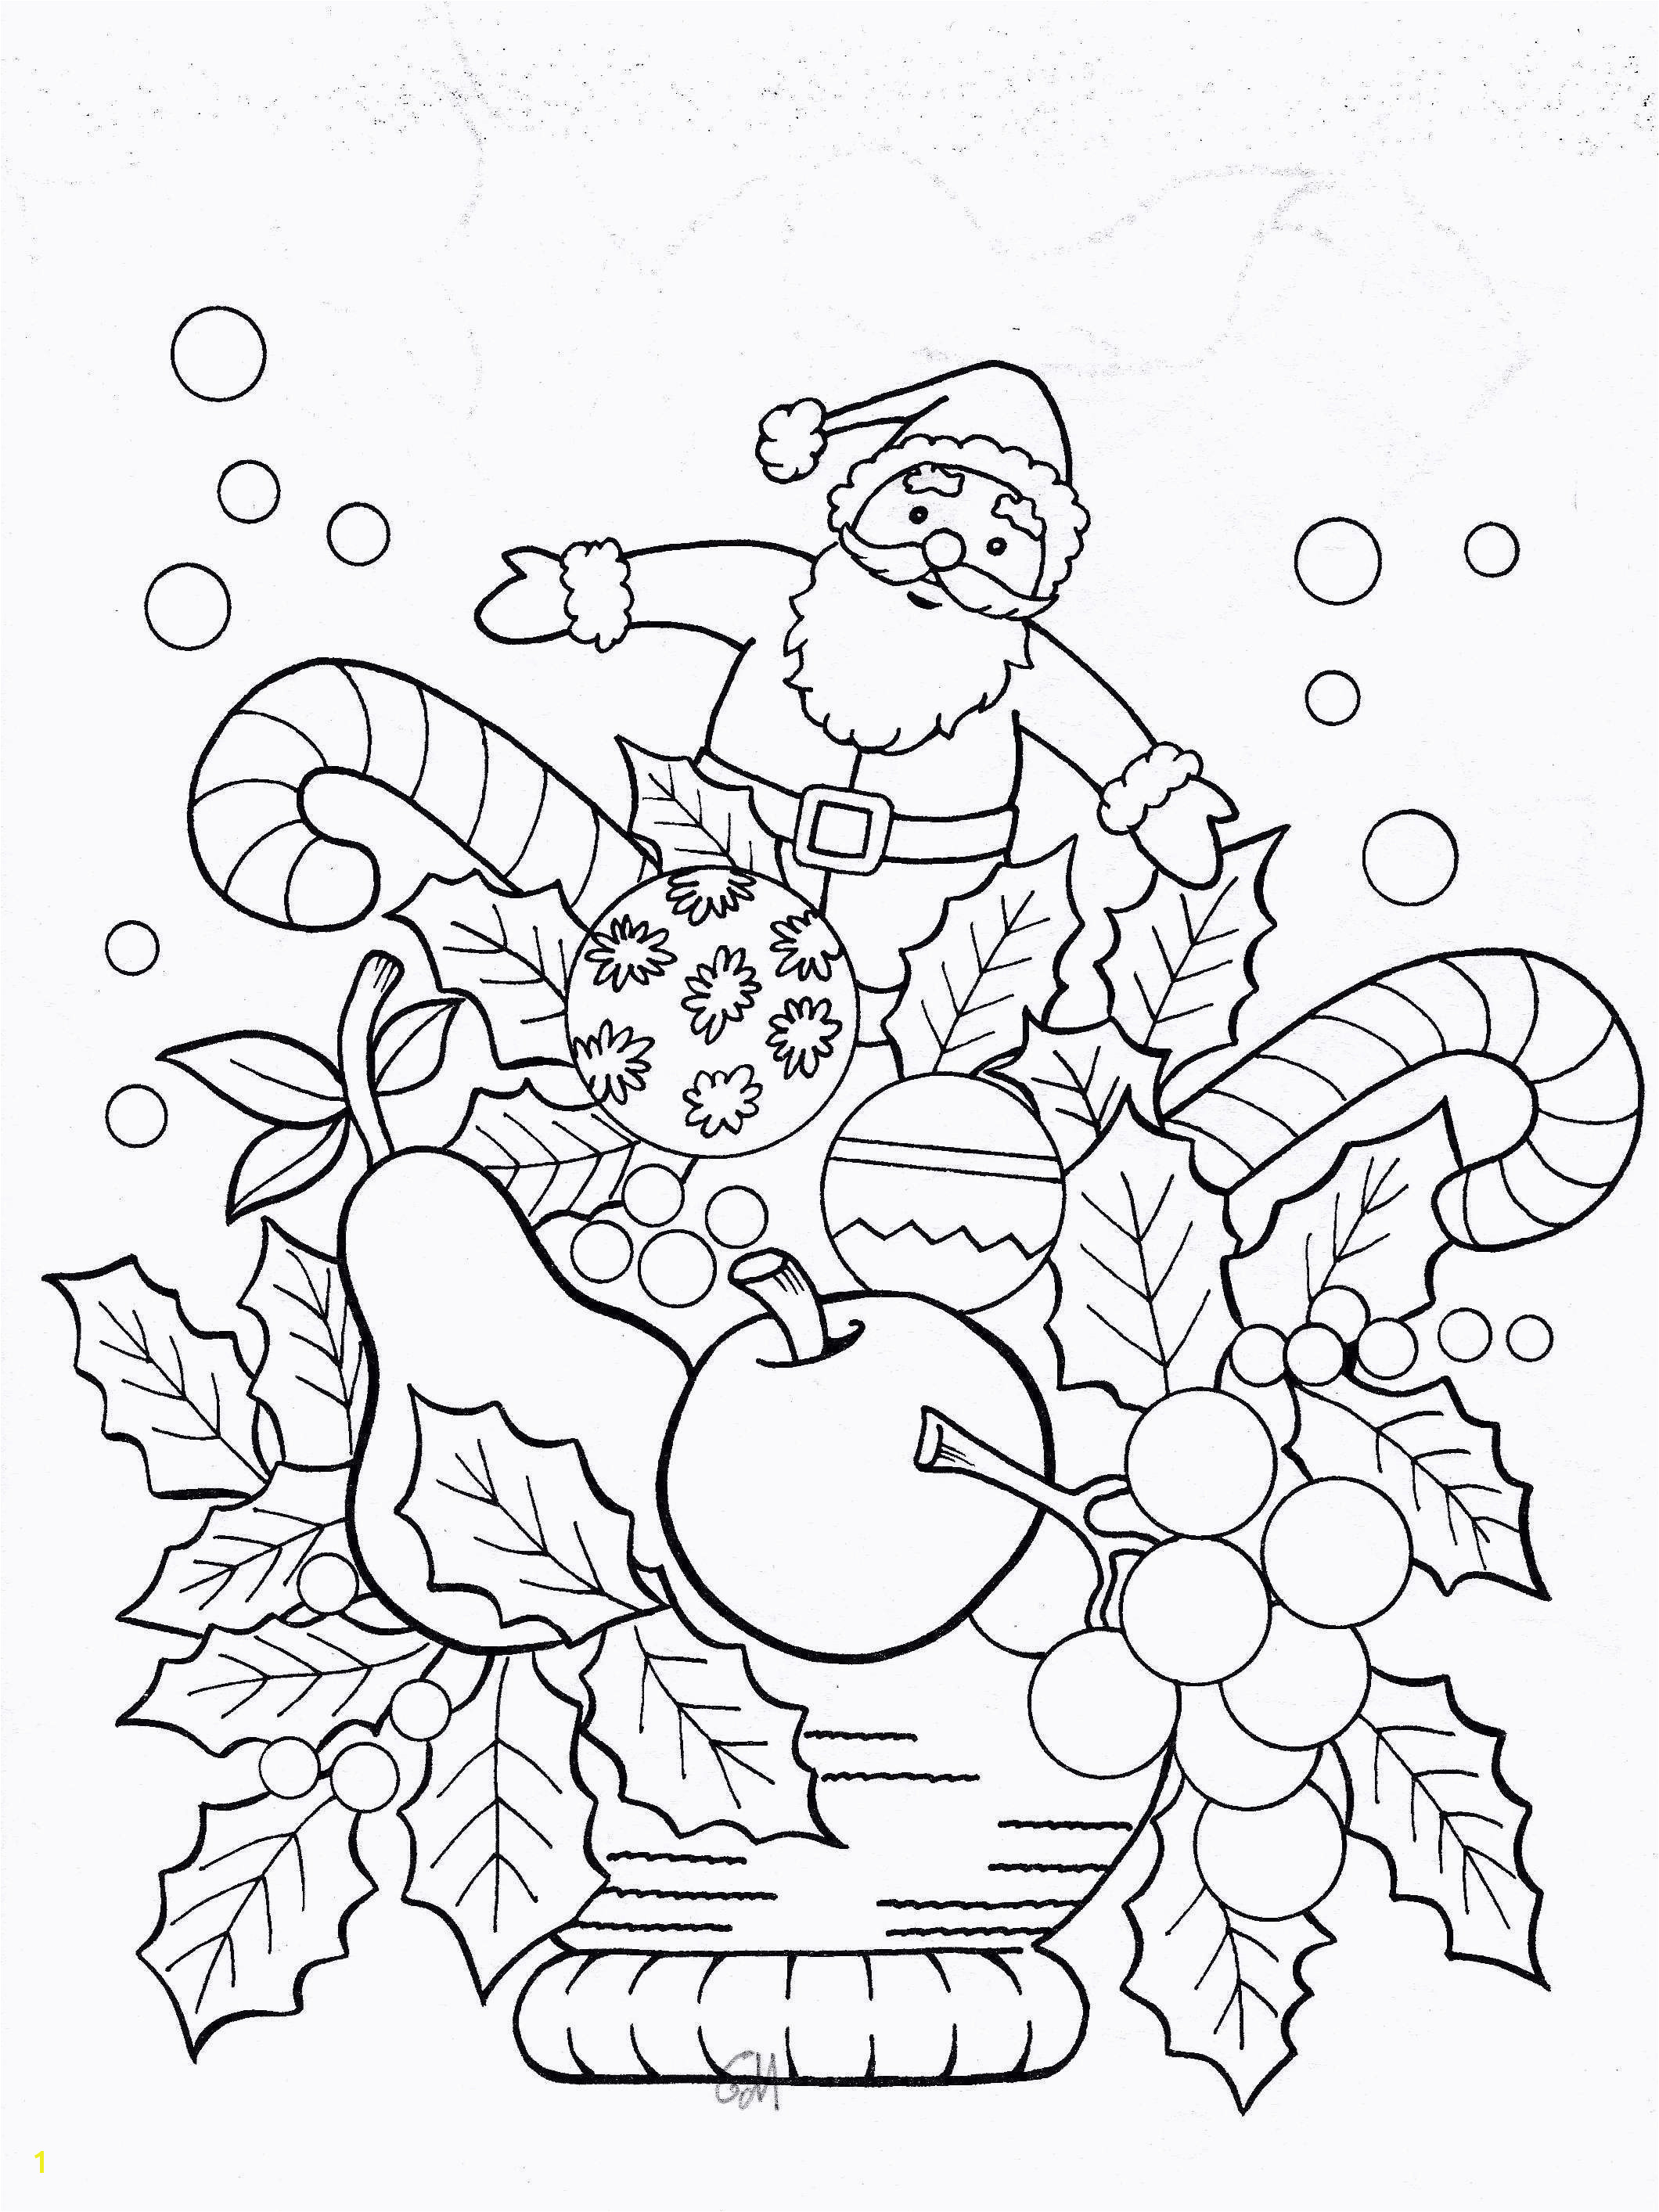 Wel e Back to School Coloring Pages Christmas Coloring Pages for Printable New Cool Coloring Printables